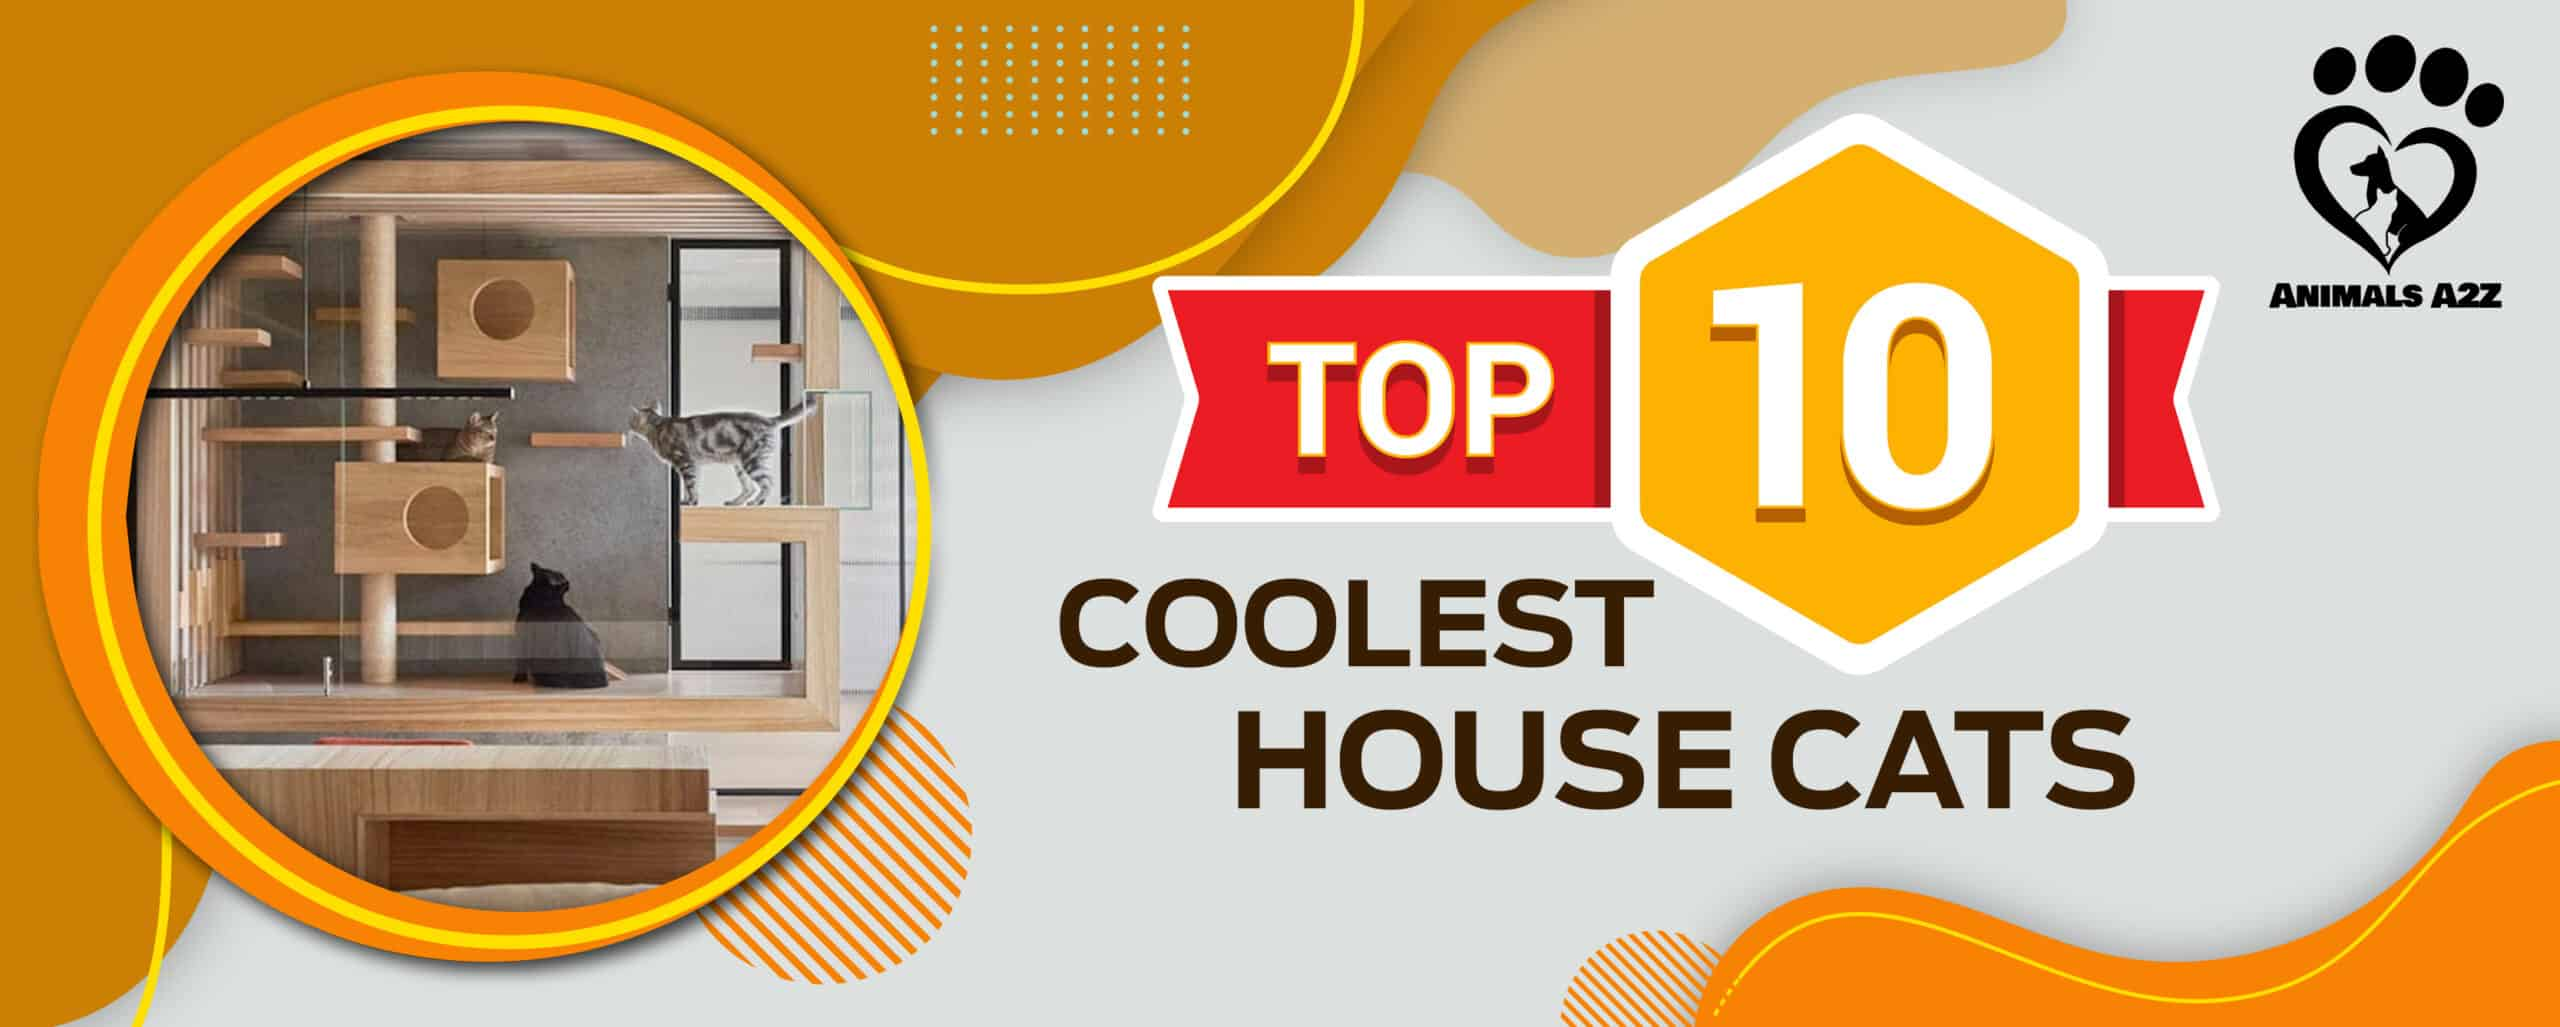 Top 10 Coolest House Cats